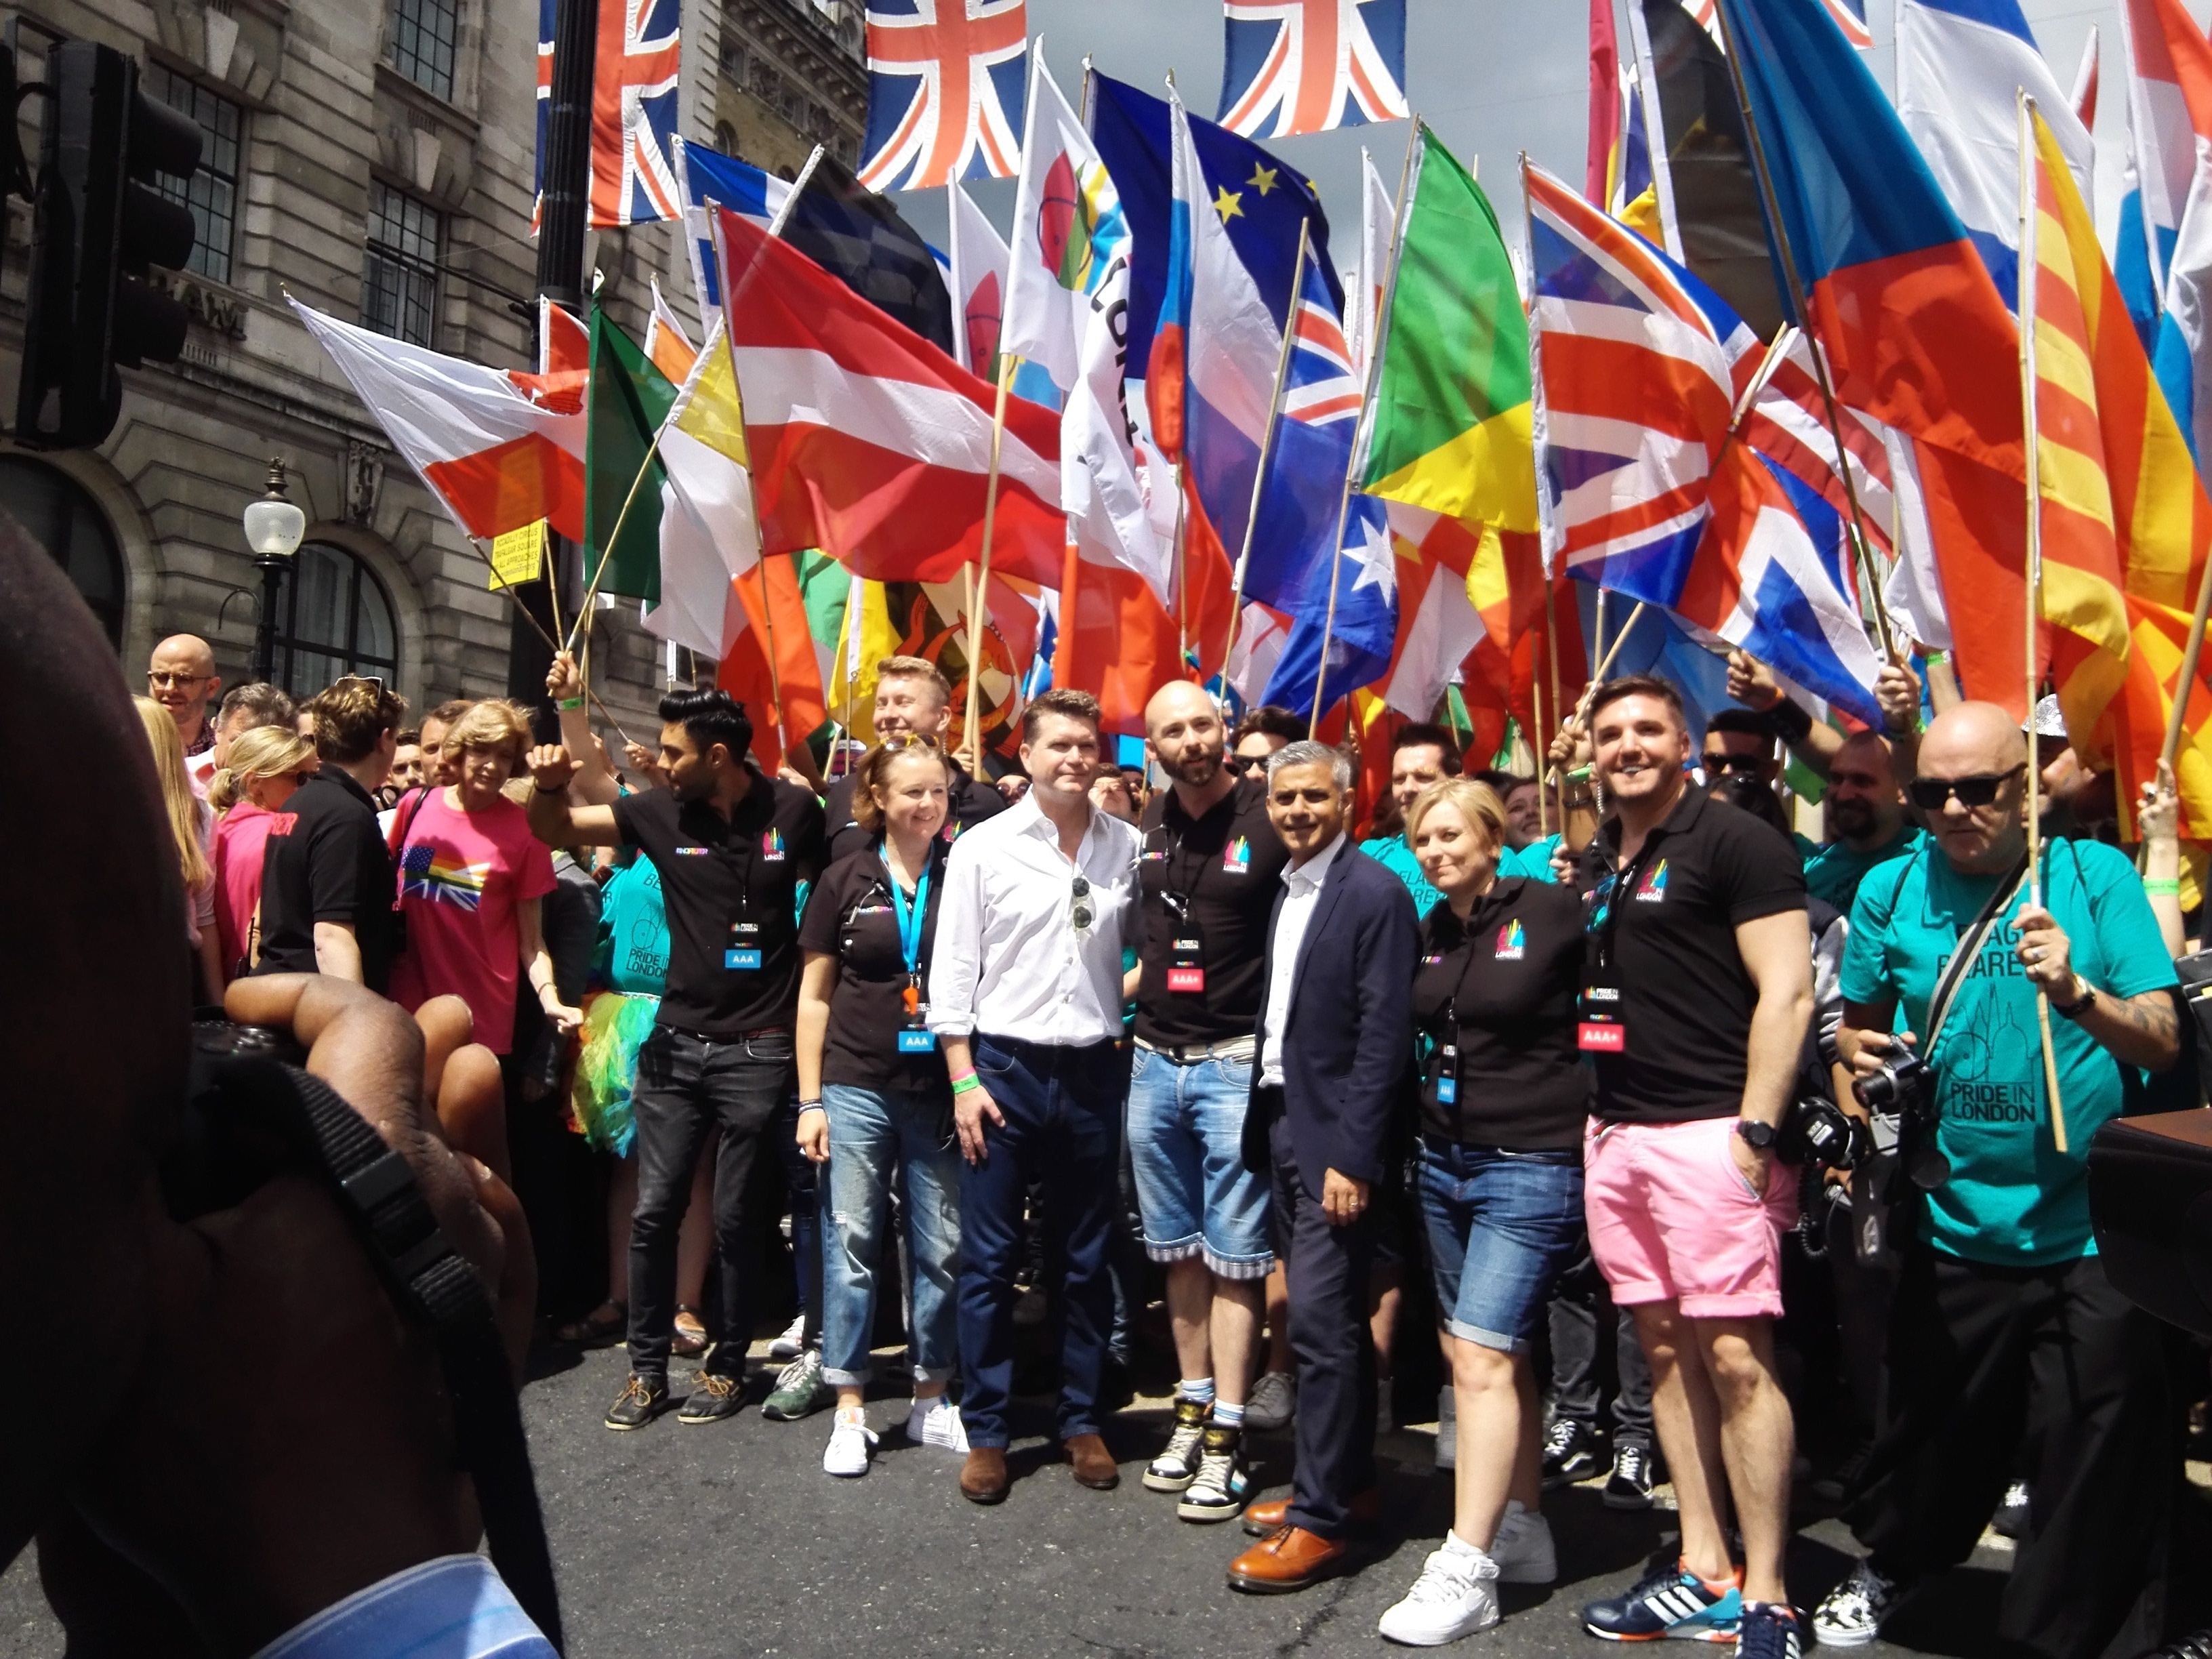 London Mayor Sadiq Khan and U.S. Ambassador Matthew Barzun were at the front of the London Pride parade. (Photo courtesy of OPDG)